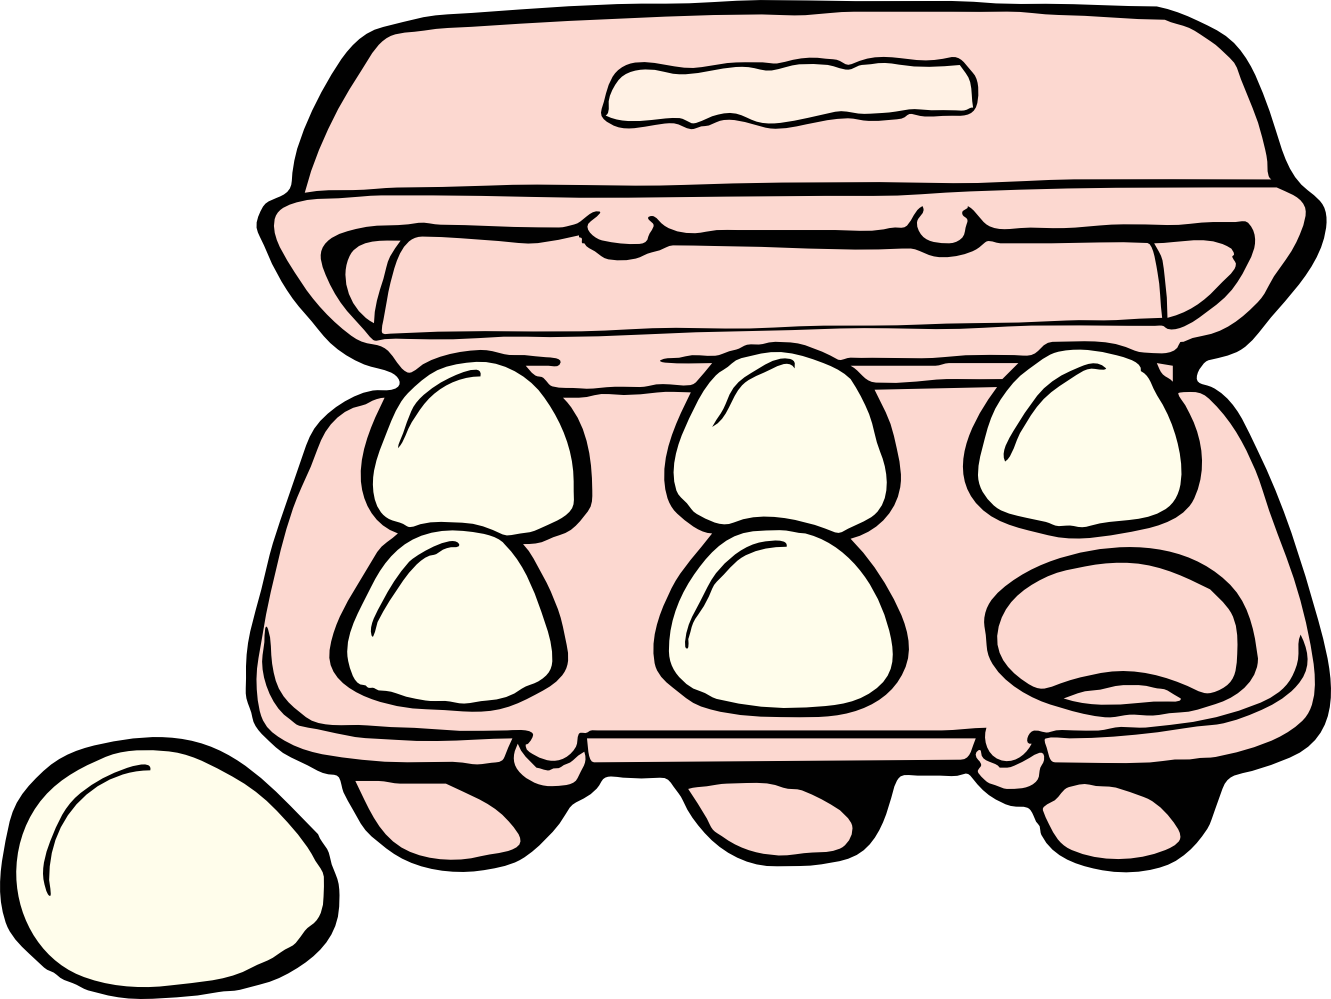 Nest clipart black and white. Egg panda free images